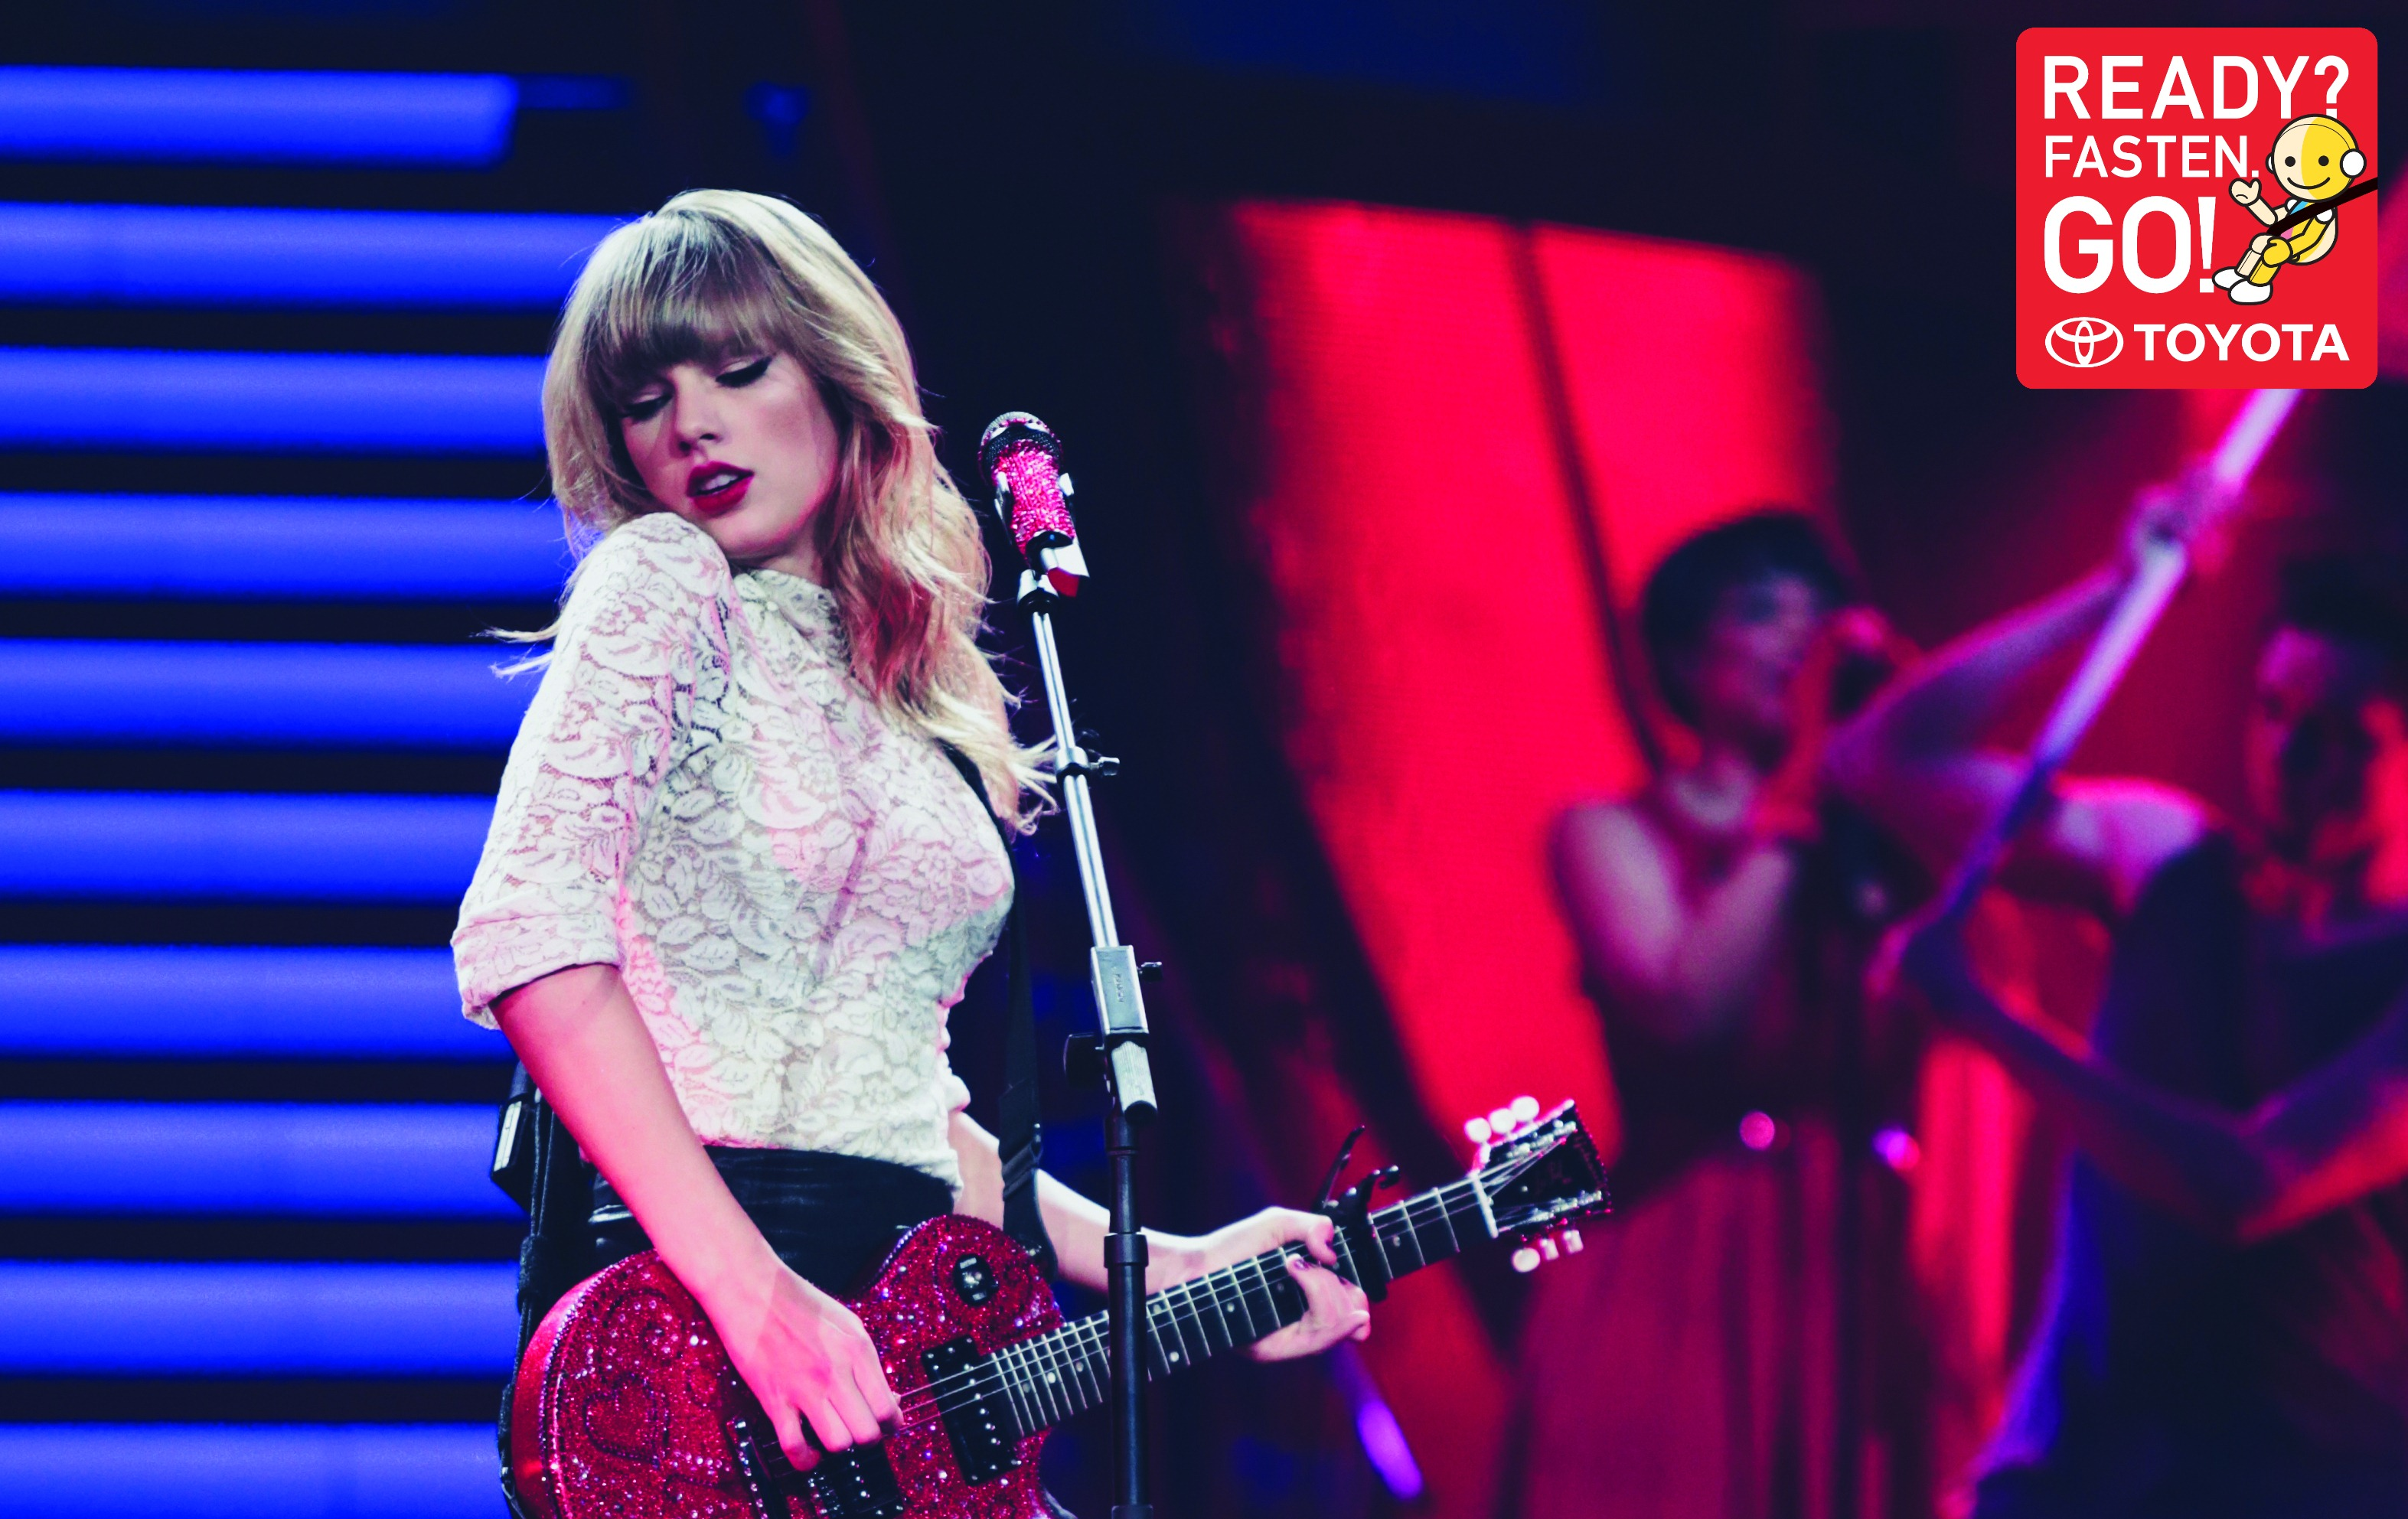 toyota teams up with taylor swift for first asean road